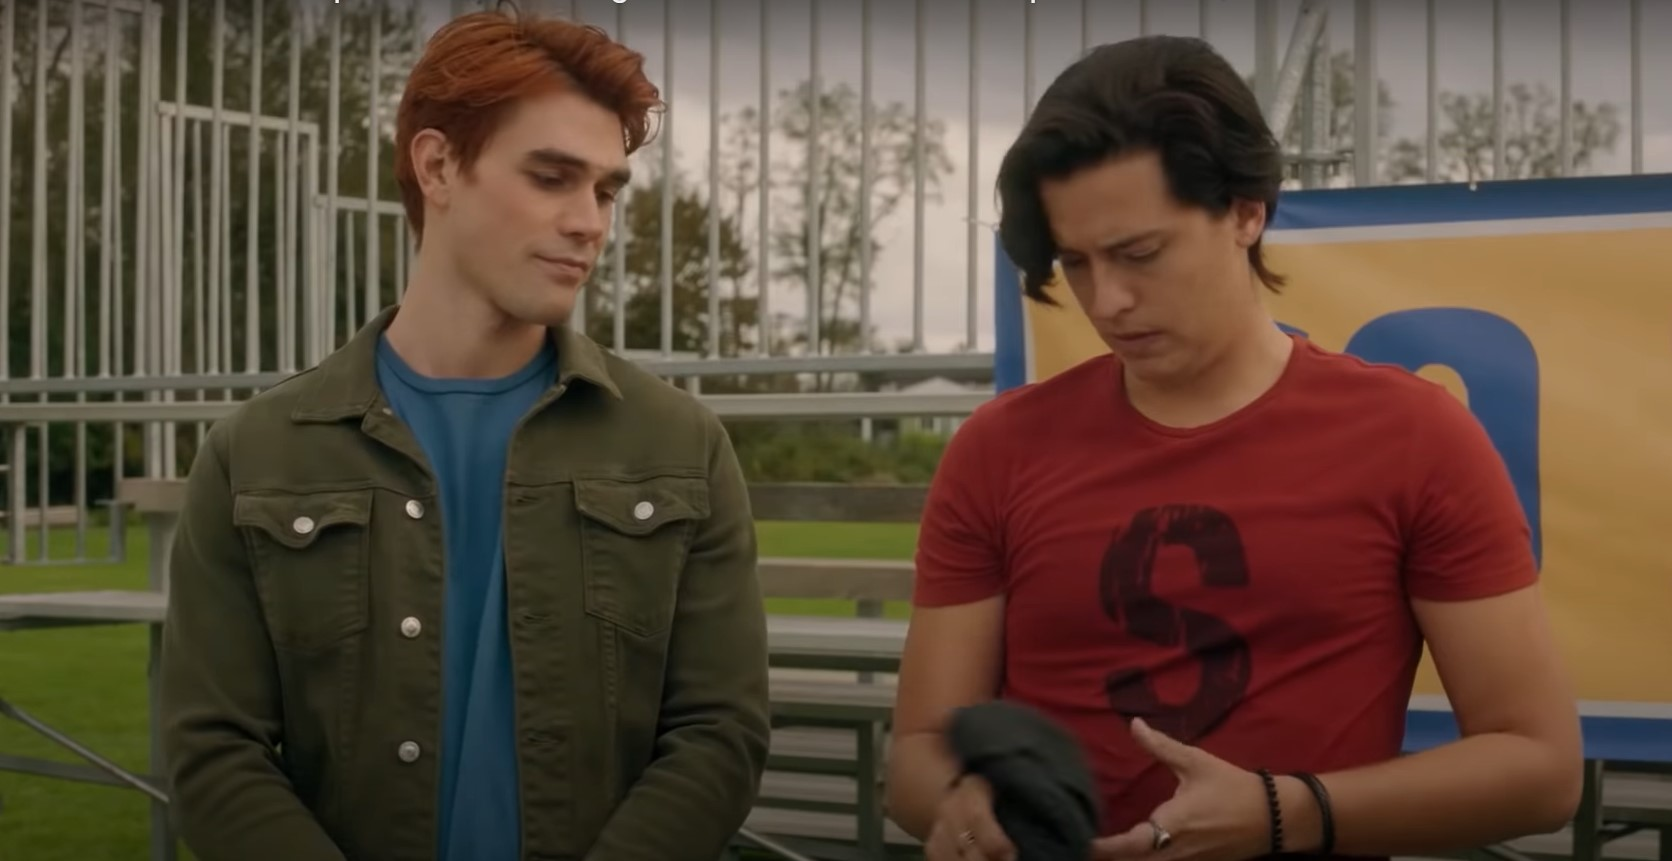 KJ Apa and Cole Sprouse as Archie and Jughead on 'Riverdale'